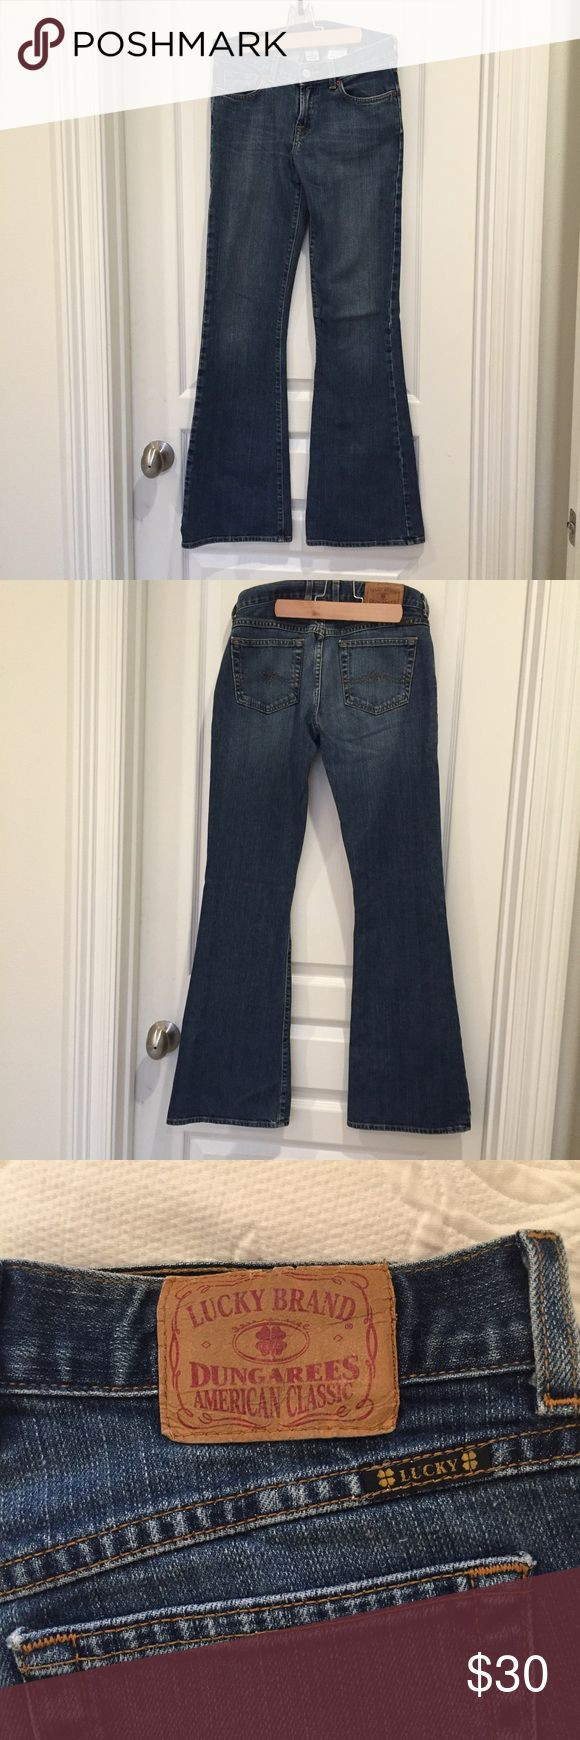 Lucky Brand Dungarees Lucky Brand Dungarees. Size 0. Mid rise flare. Lucky Brand Jeans